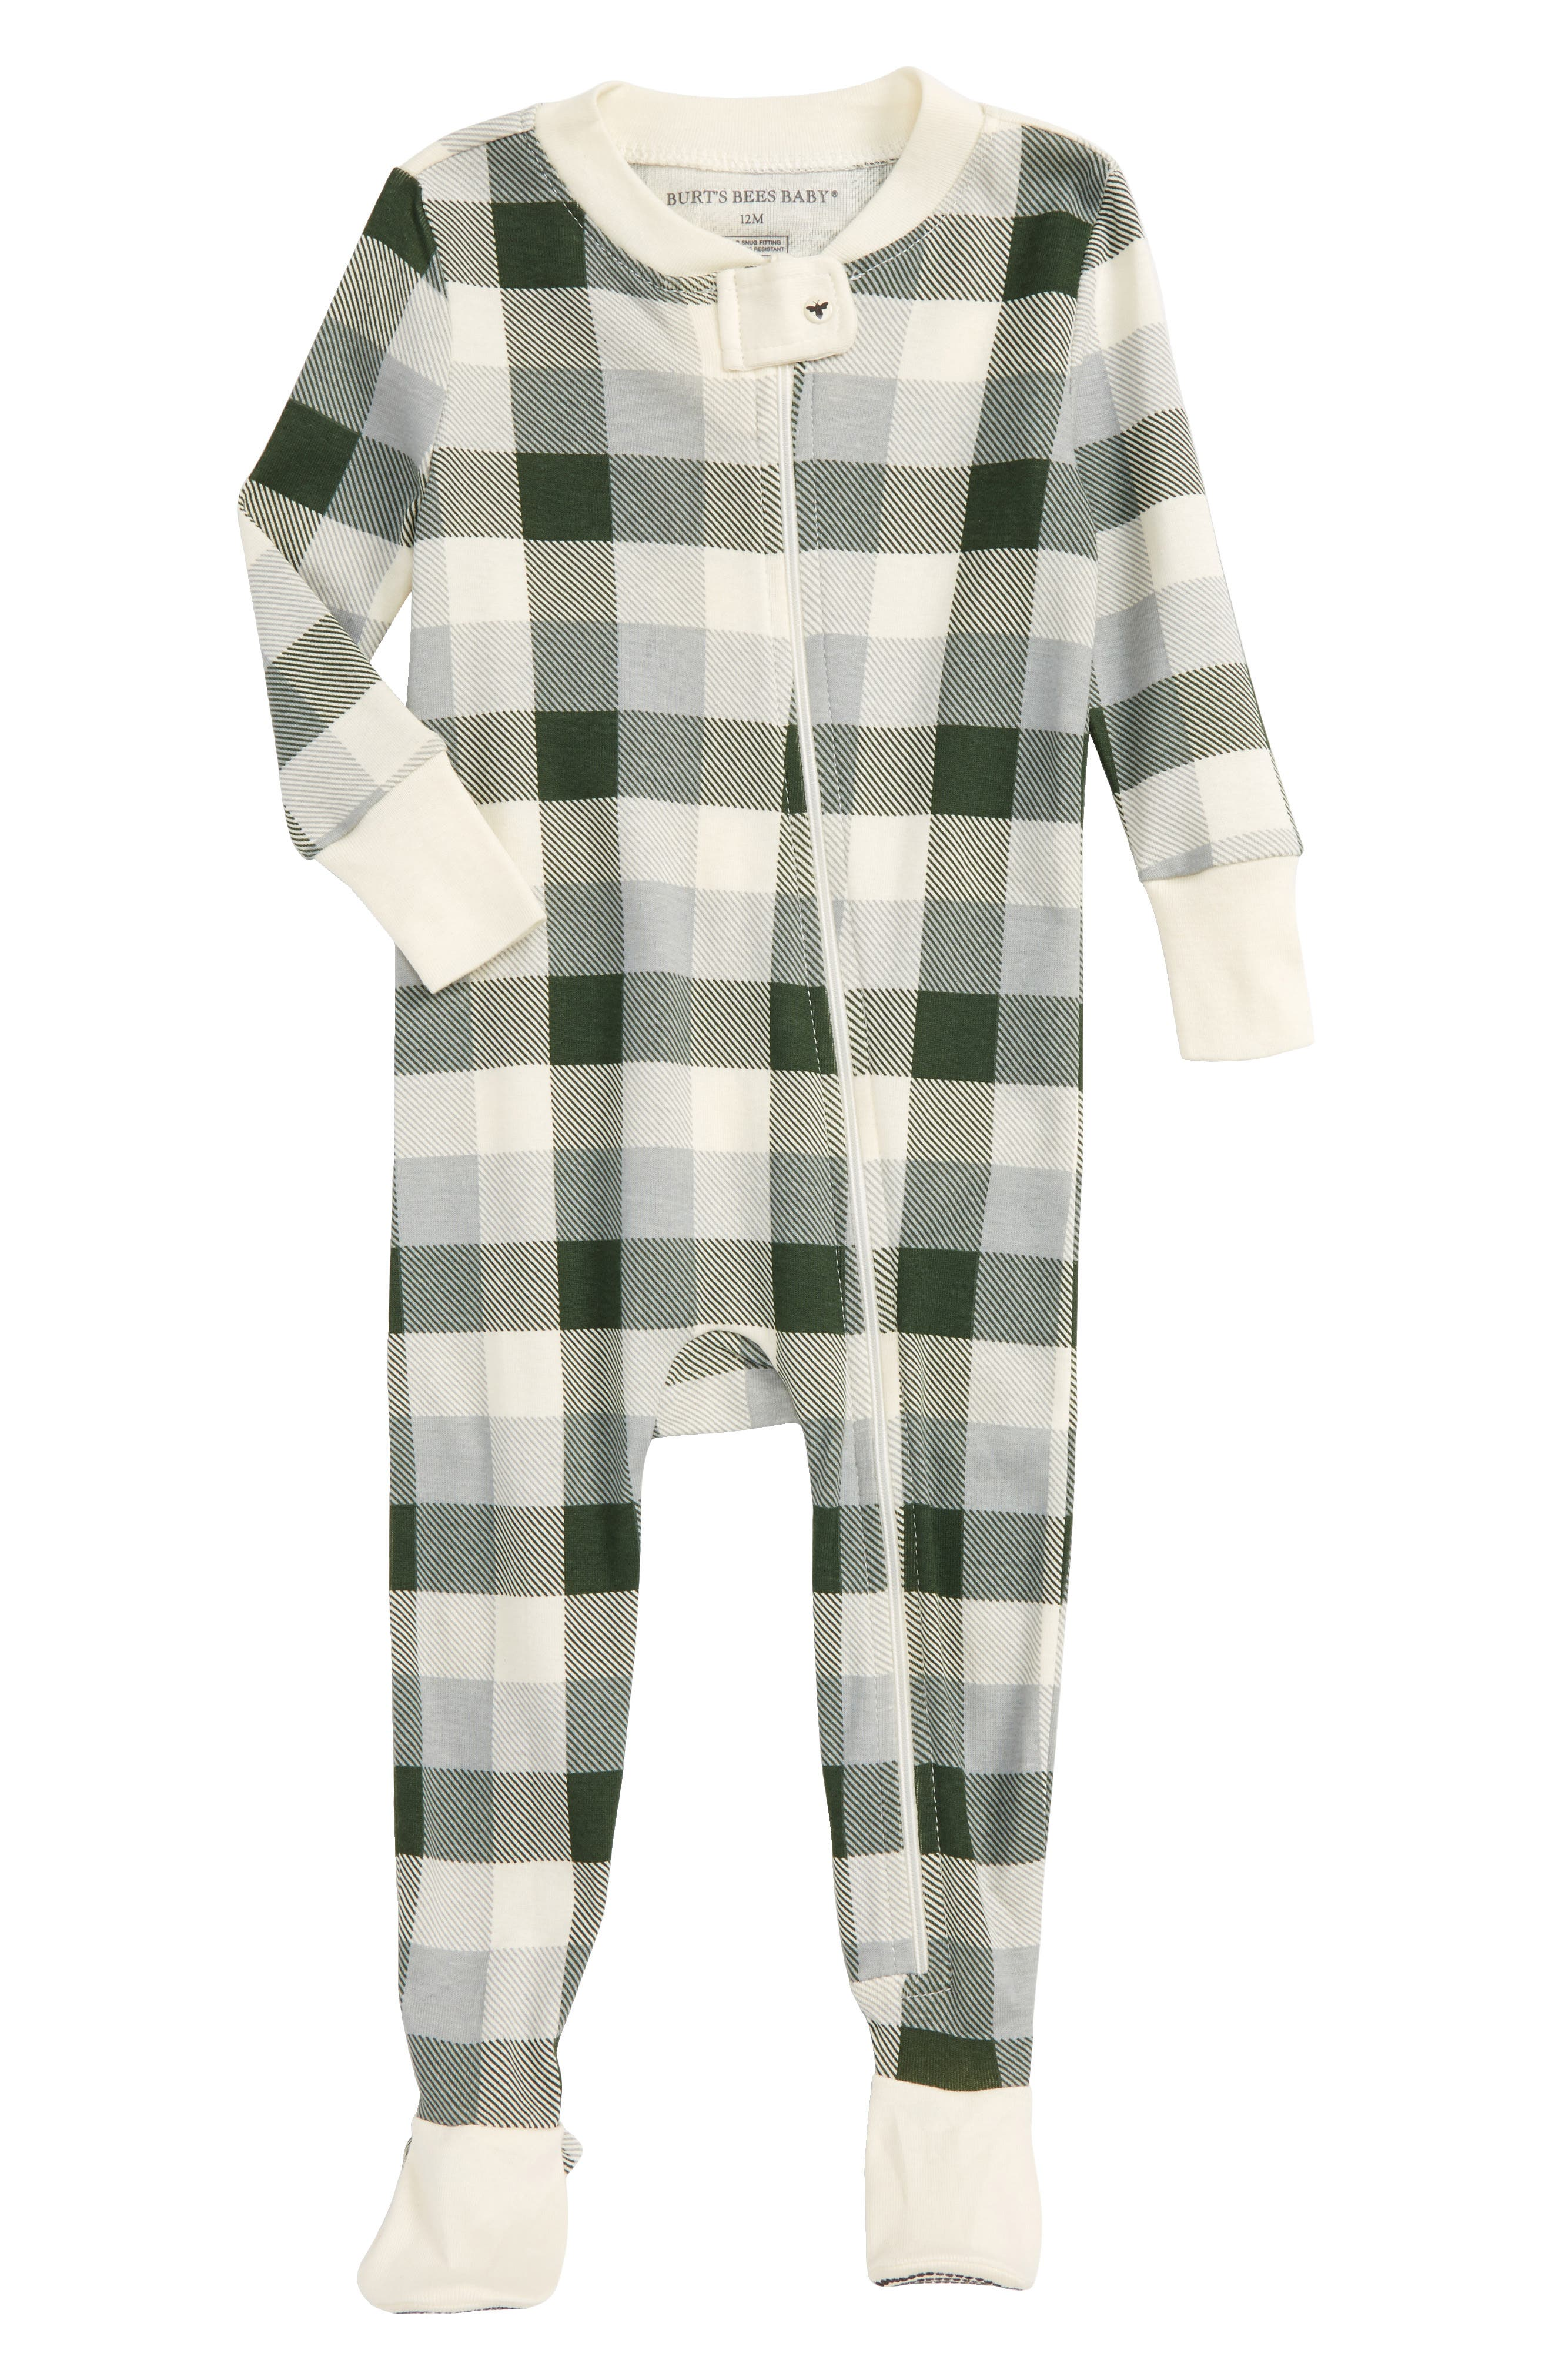 BURT'S BEES BABY Buffalo Check Fitted One-Piece Pajamas, Main, color, 300